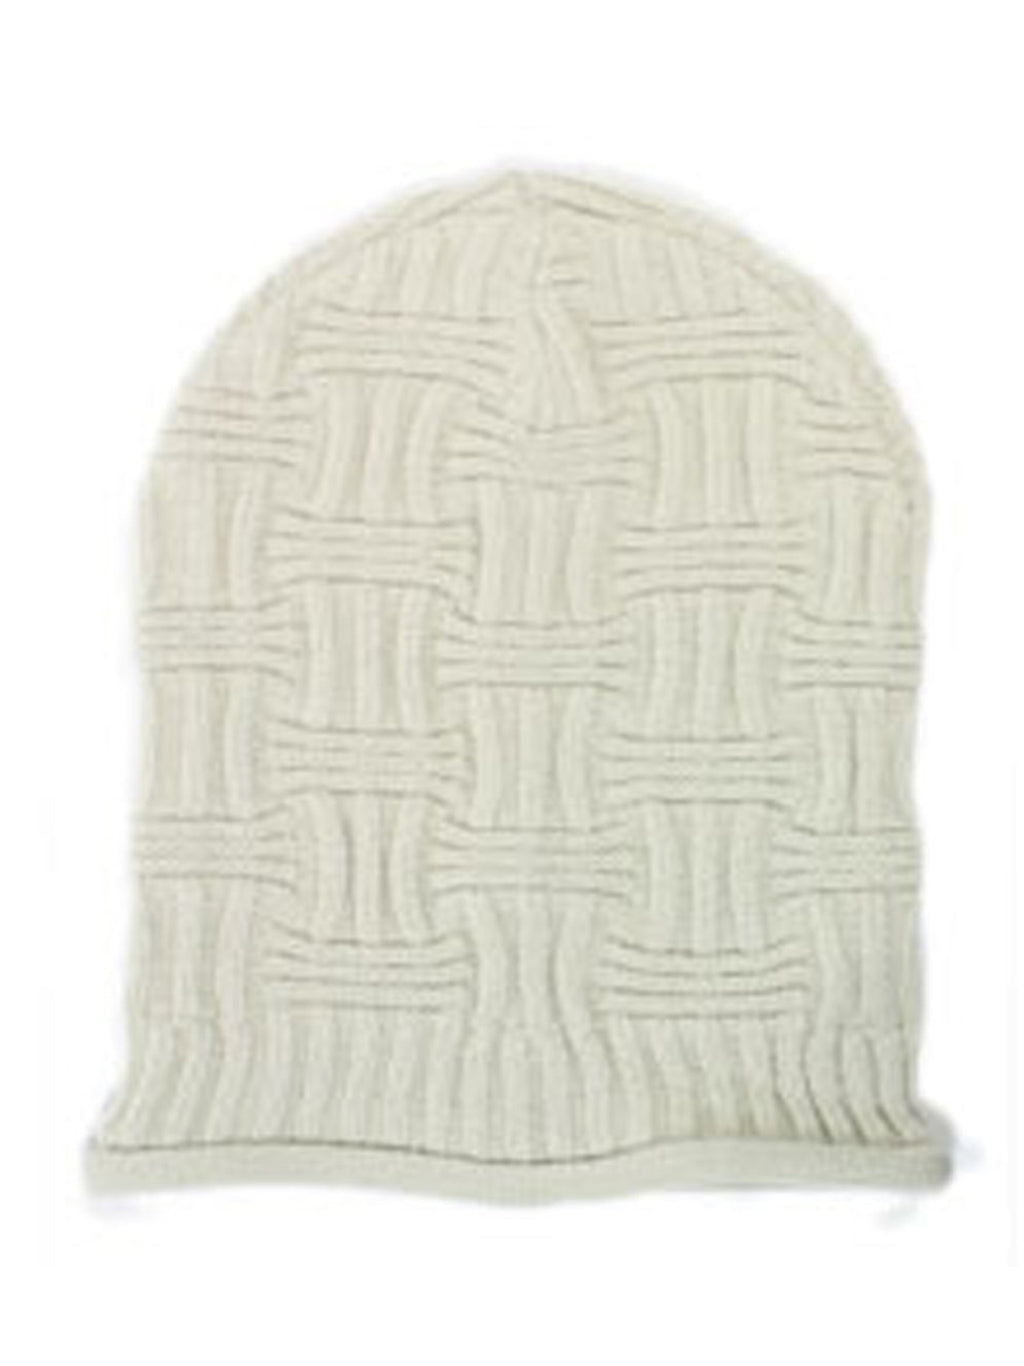 Ivory Unisex Basket Weave Slouchy Beanie Hat Mid Weight